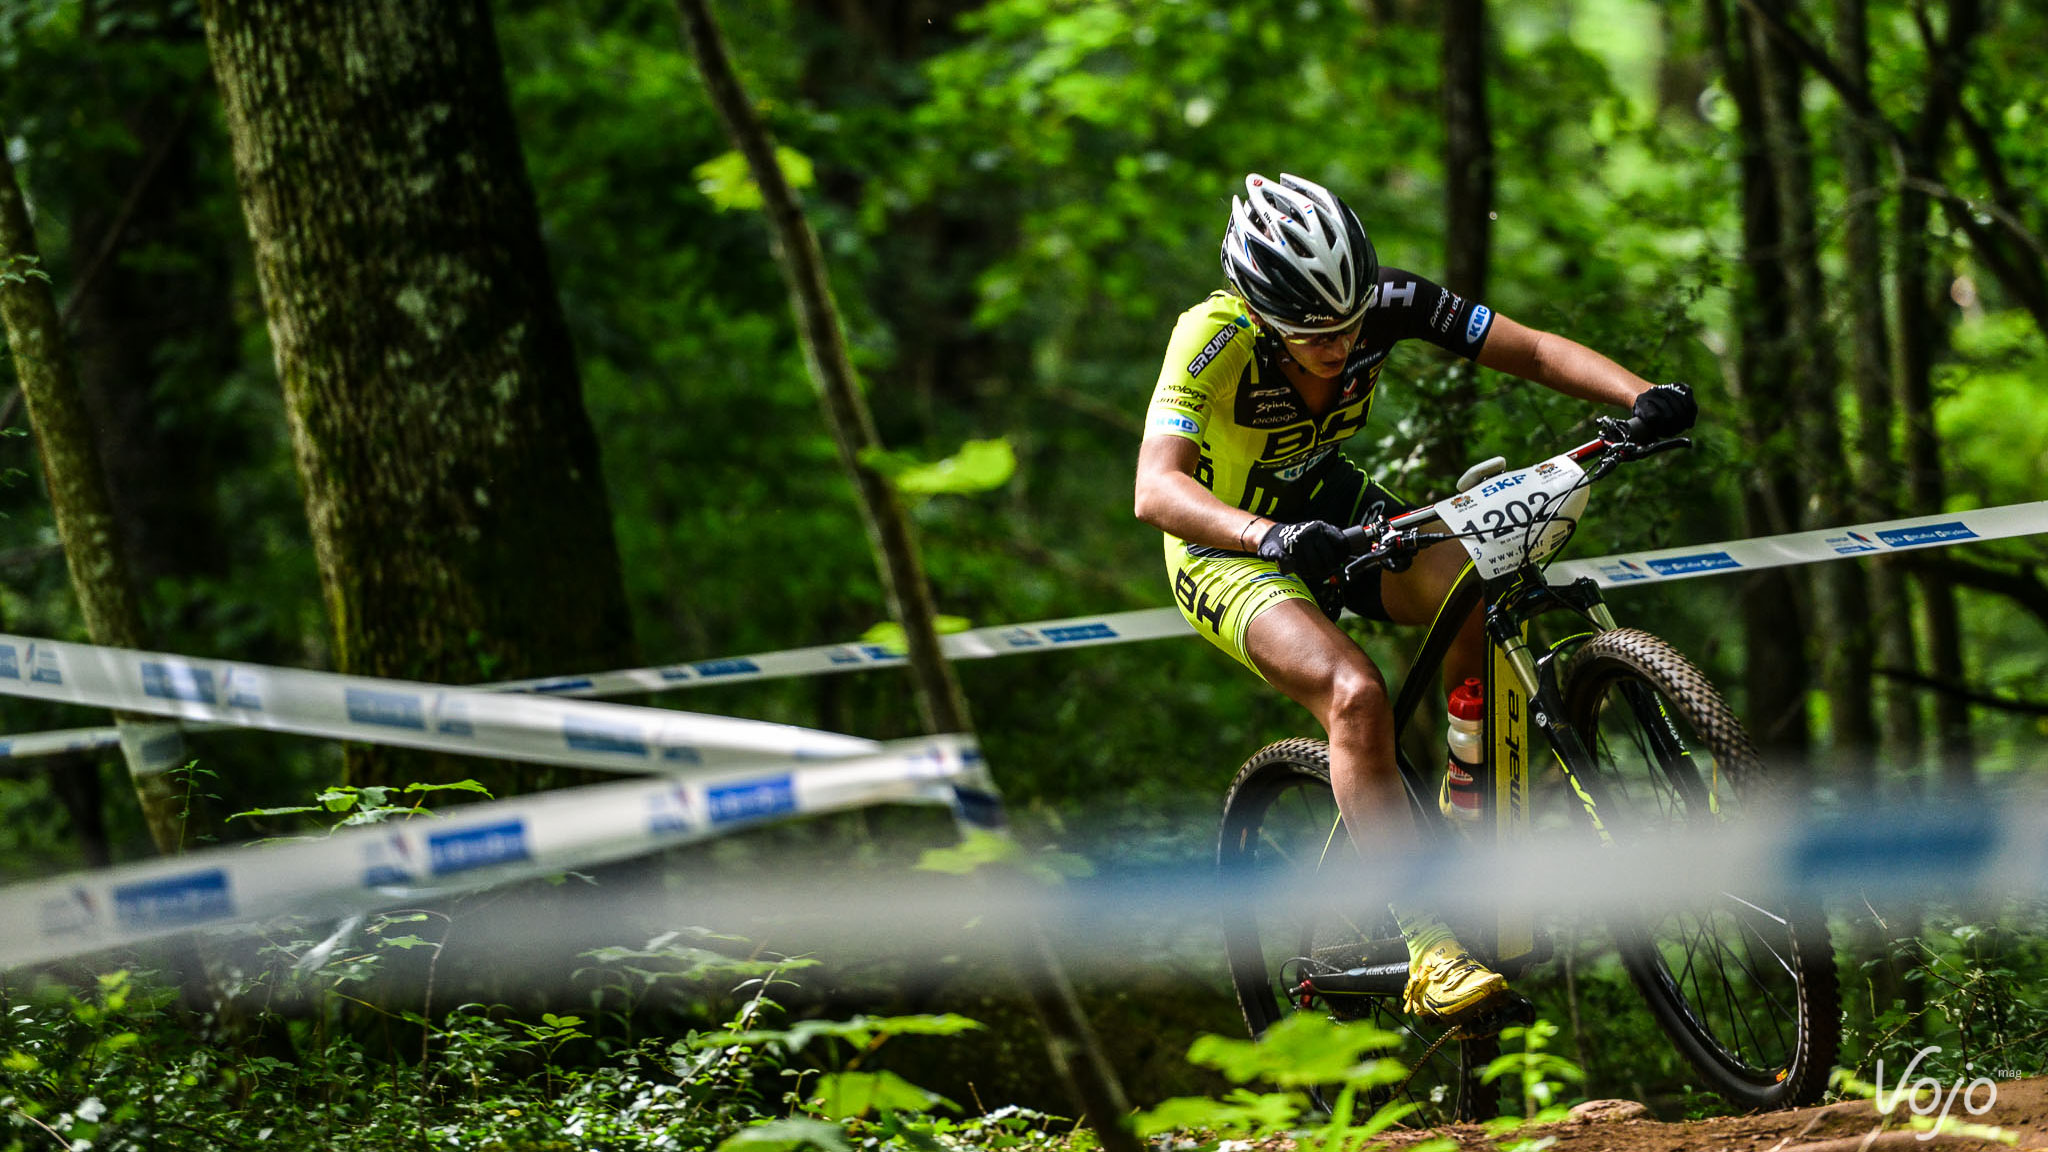 Coupe_France_VTT_Lons_le_Saunier_Clauzel_Metzler_Enaux_Copyright_Romain_Laurent_VojoMag-10